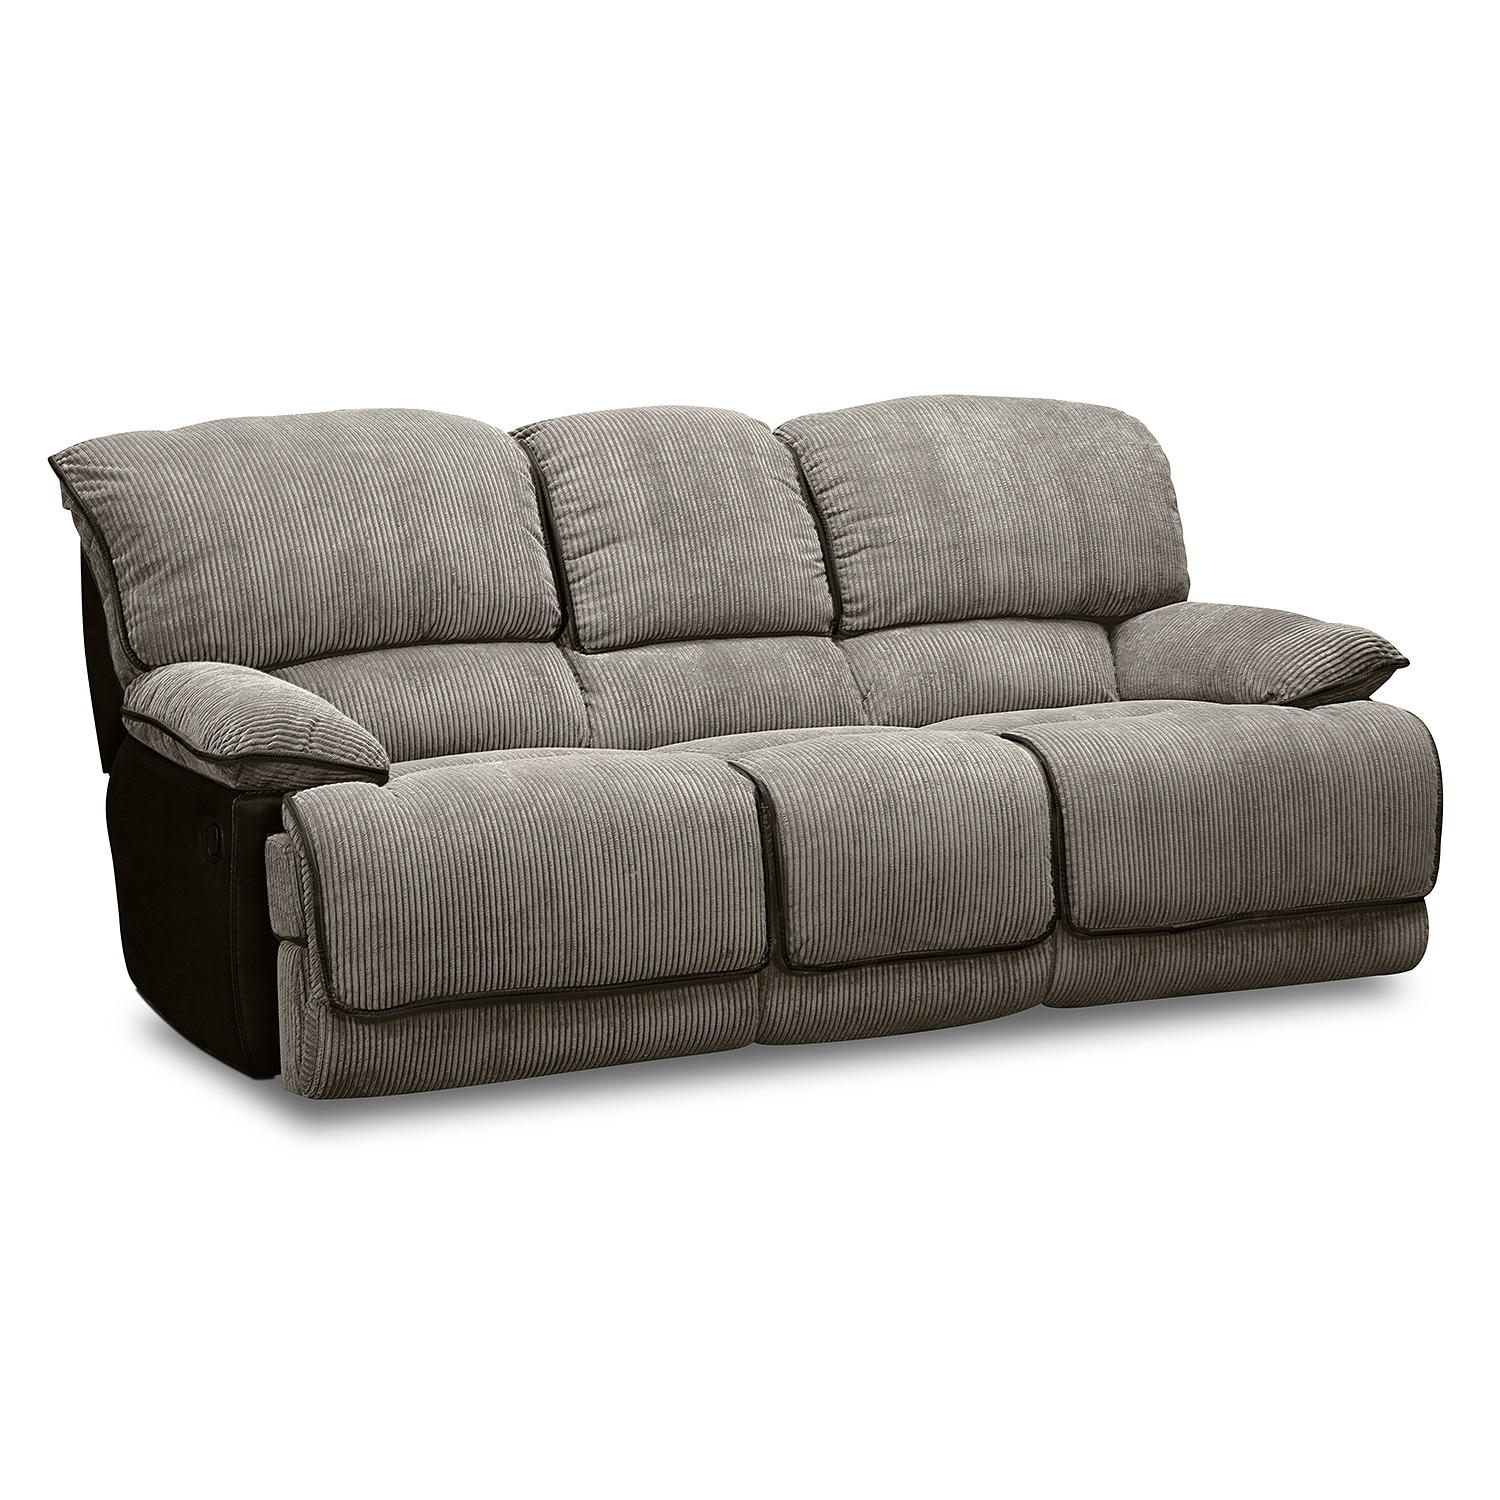 Laguna dual reclining sofa steel value city furniture for Furniture furniture